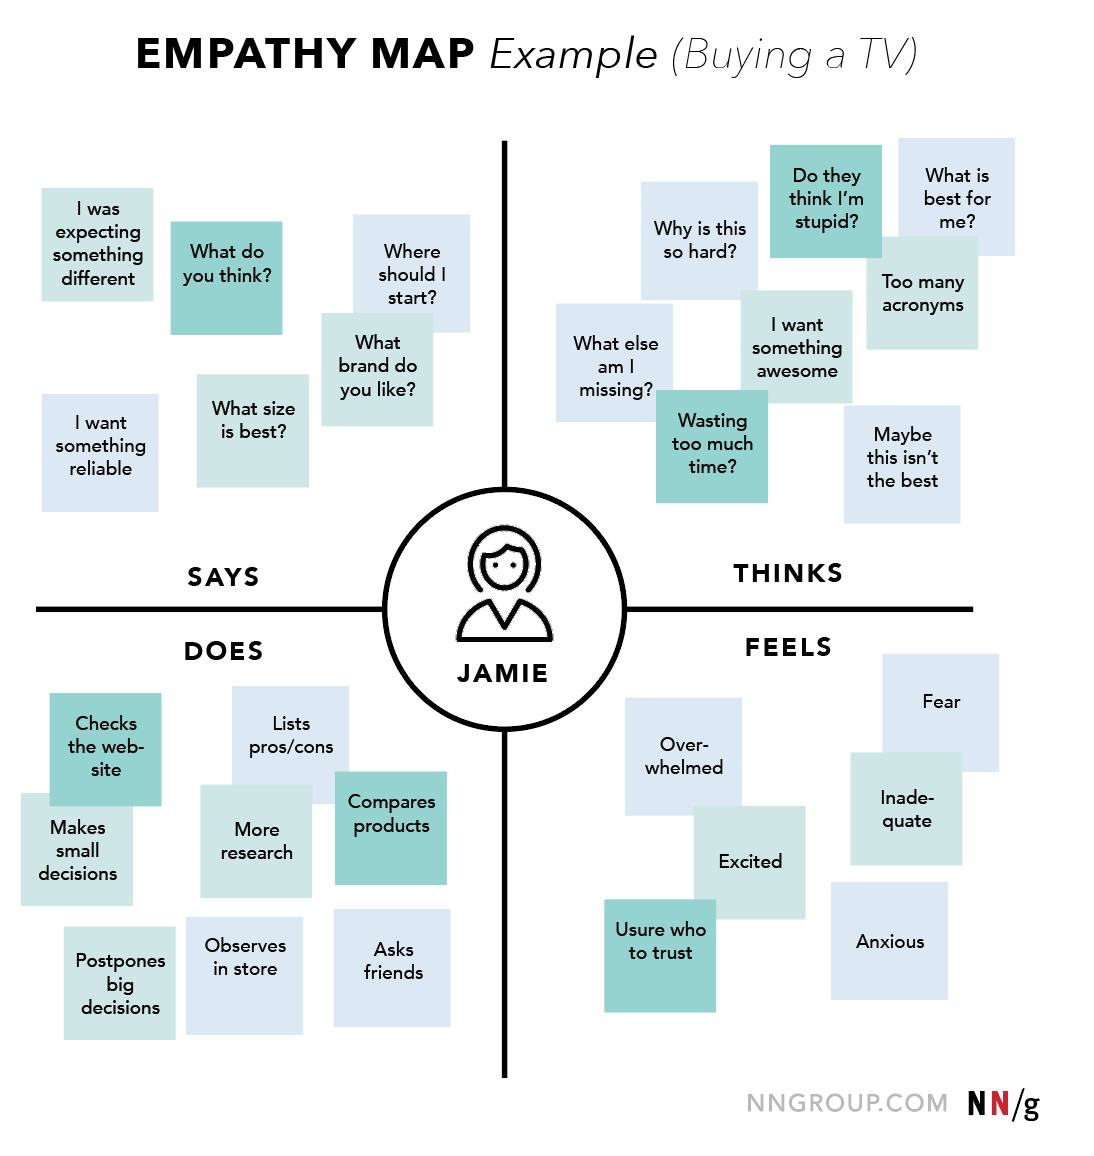 simple empathy mapping example from nngroup